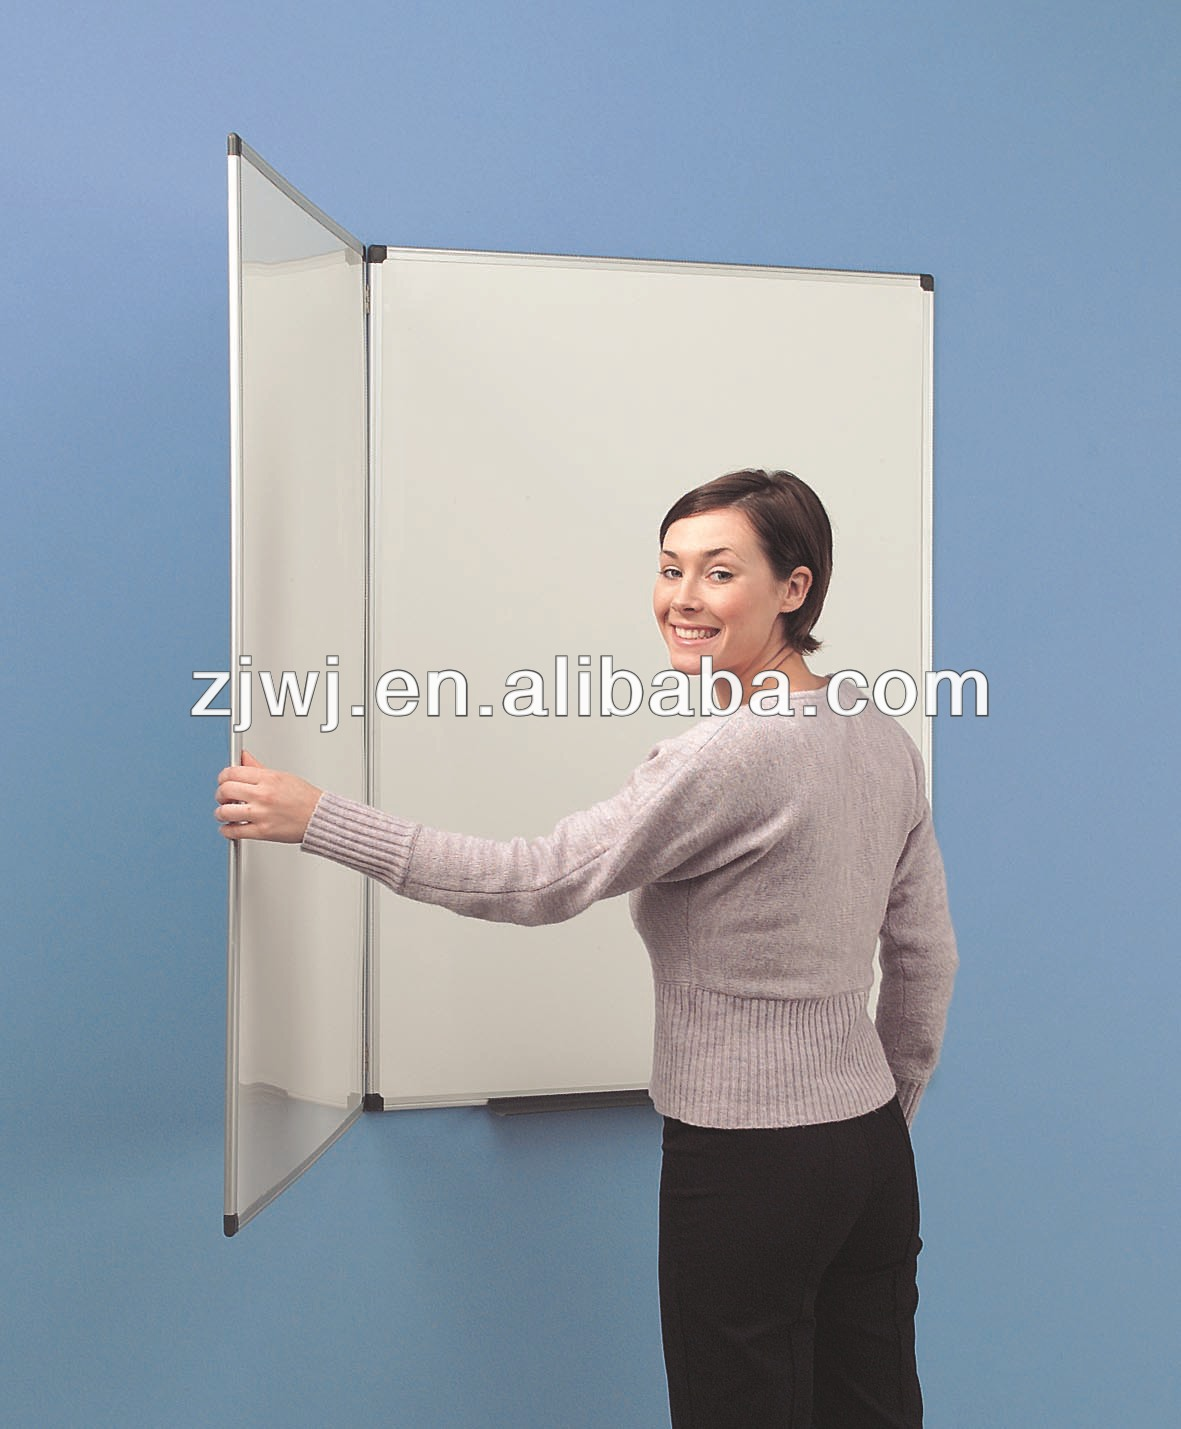 Folding whiteboard 60x90cm 3 PANEL/folding wall mounted magnetic whiteboard